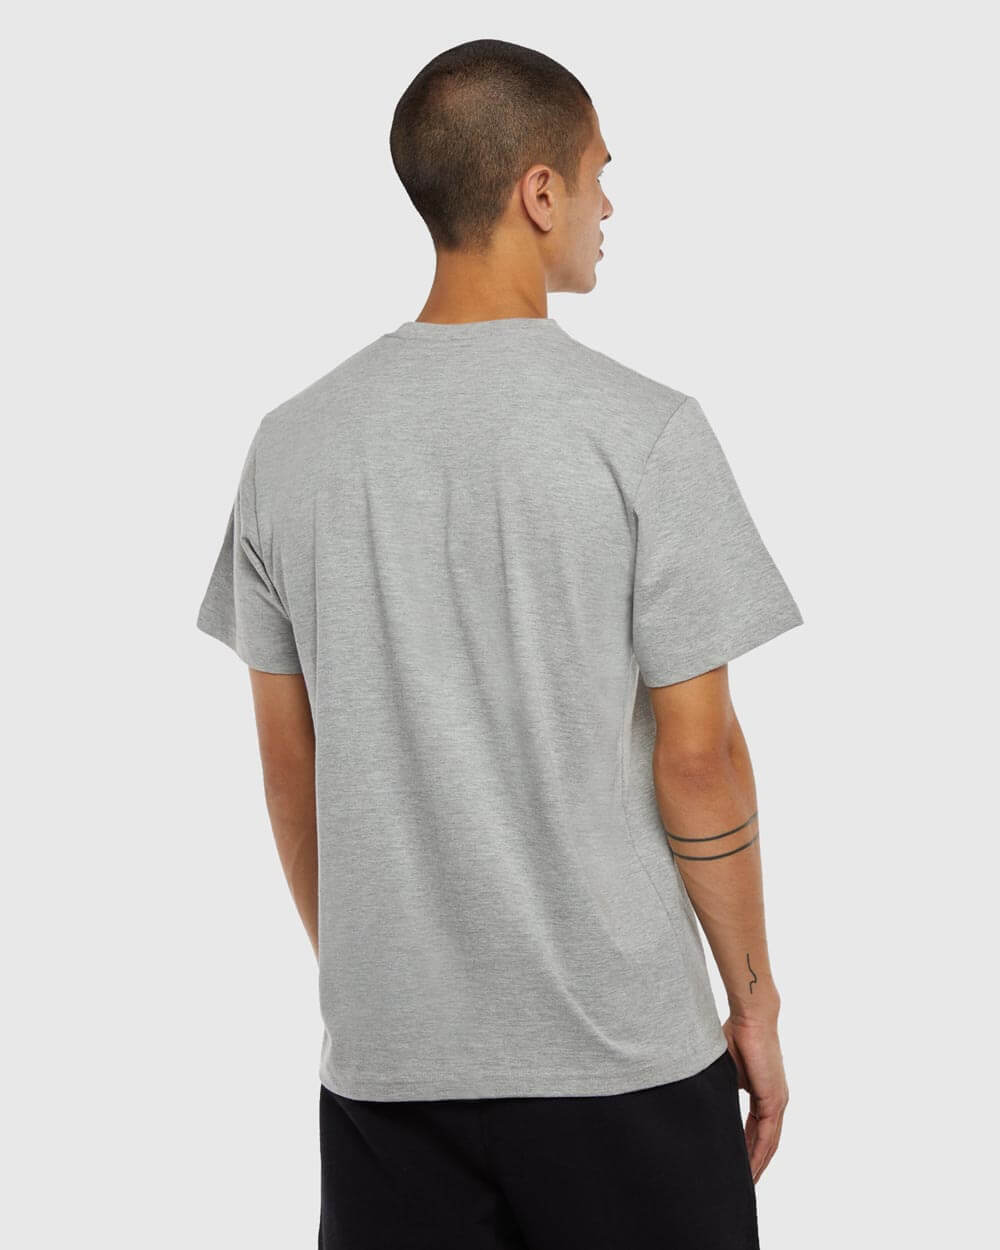 OVO SOUVENIR T-SHIRT - HEATHER GREY